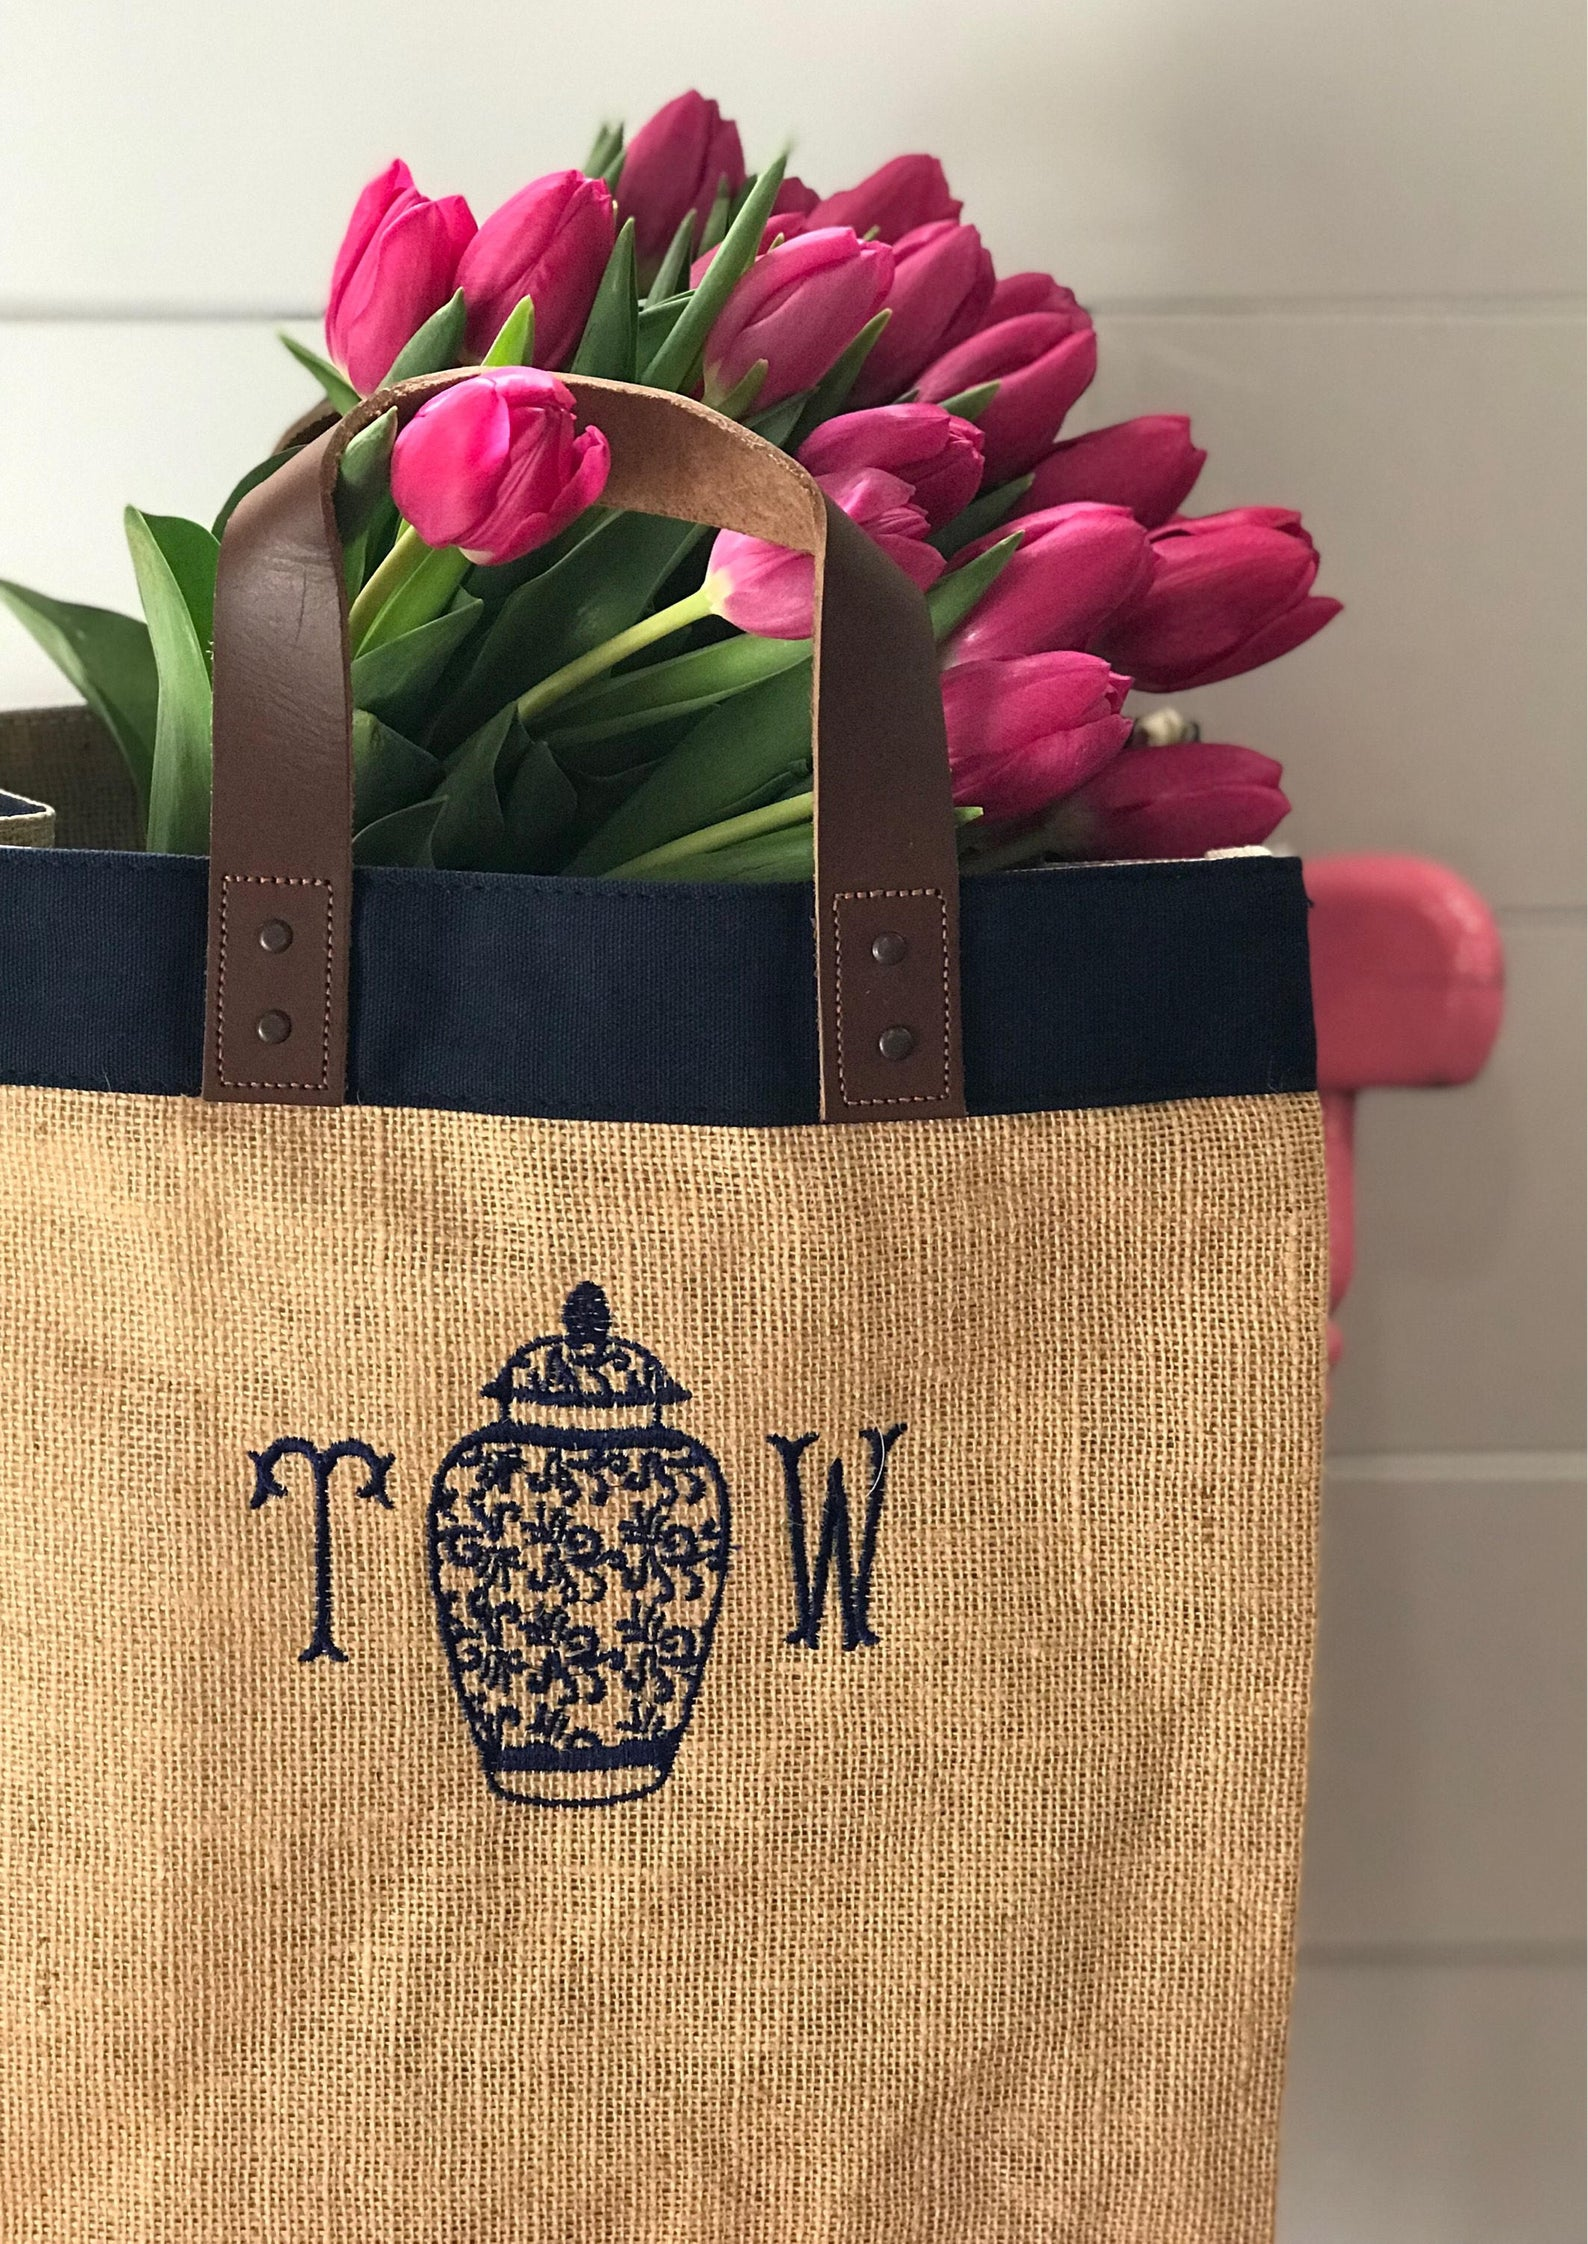 brown tote with monogram and pink flowers inside